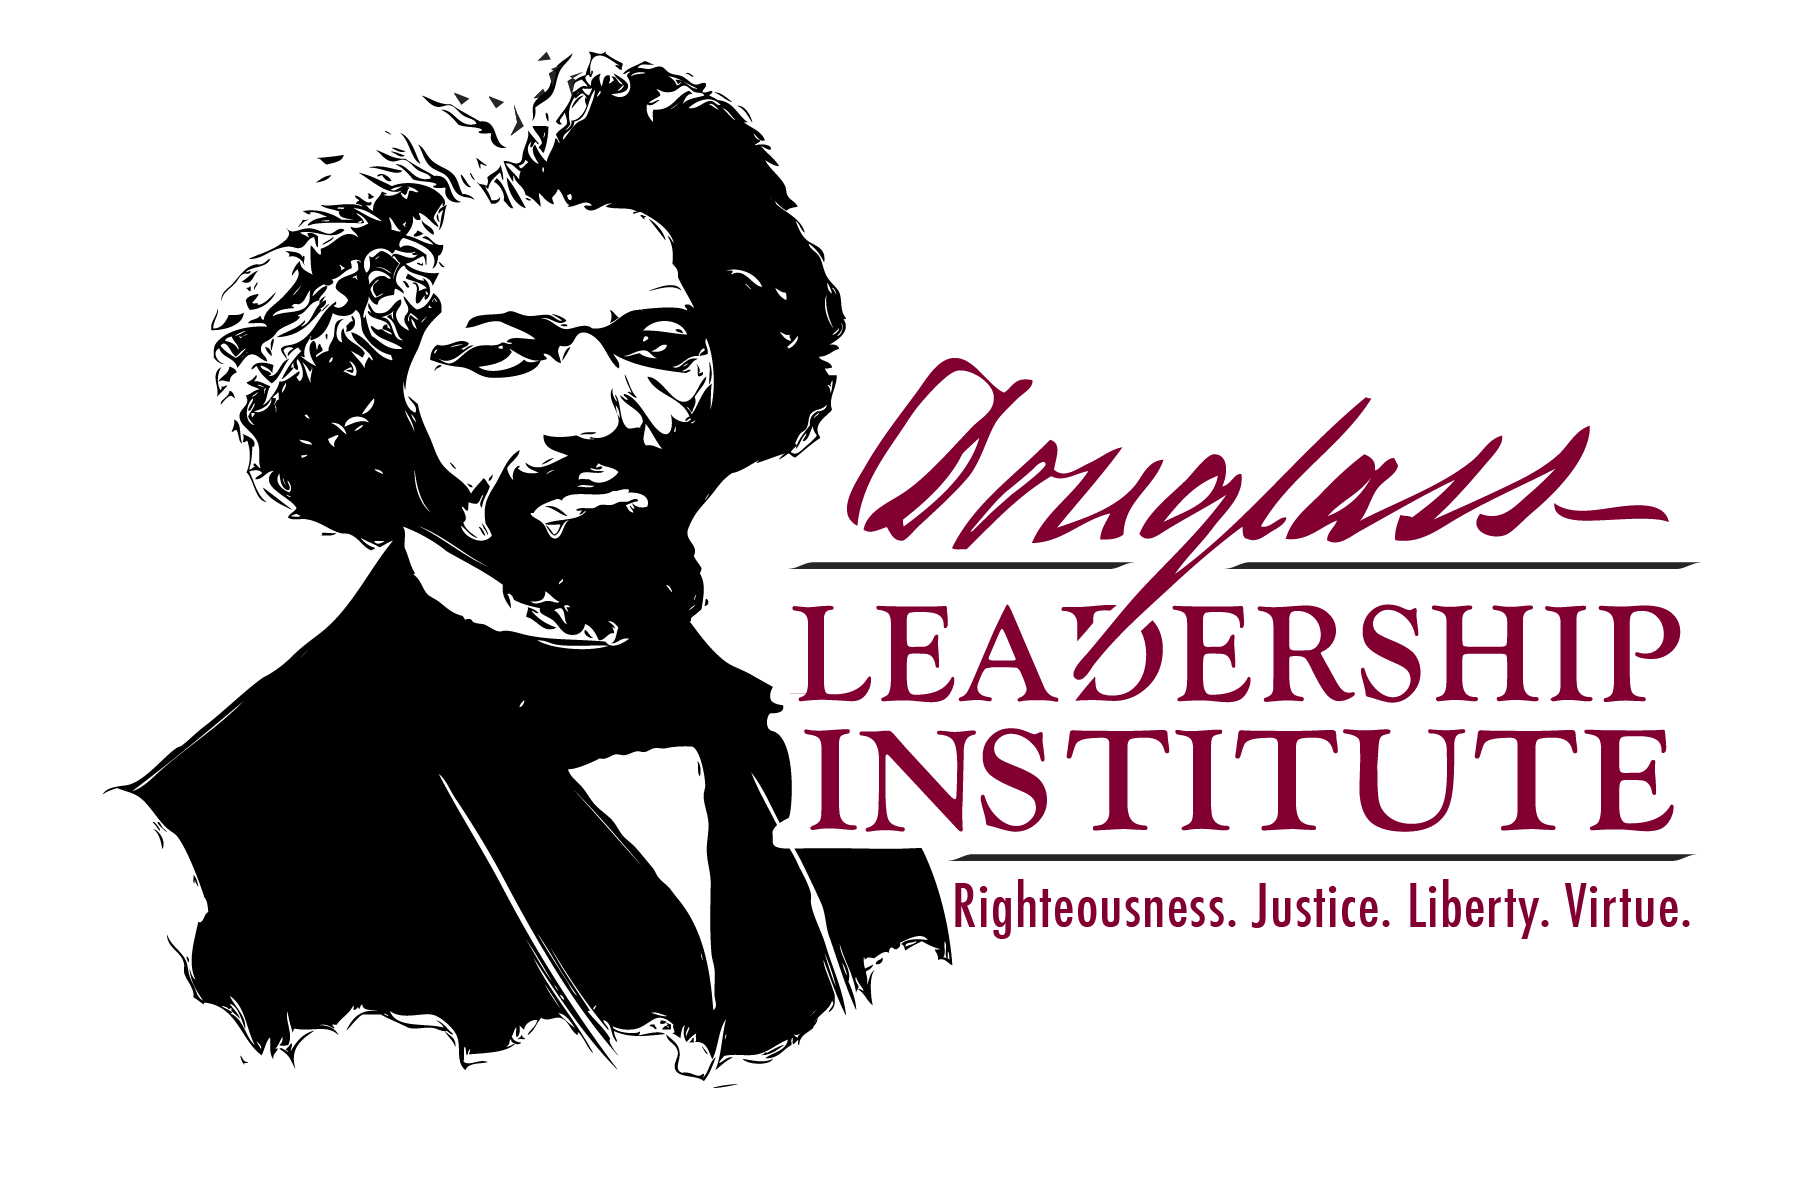 Douglass Leadership Institute (DLI), Inc.